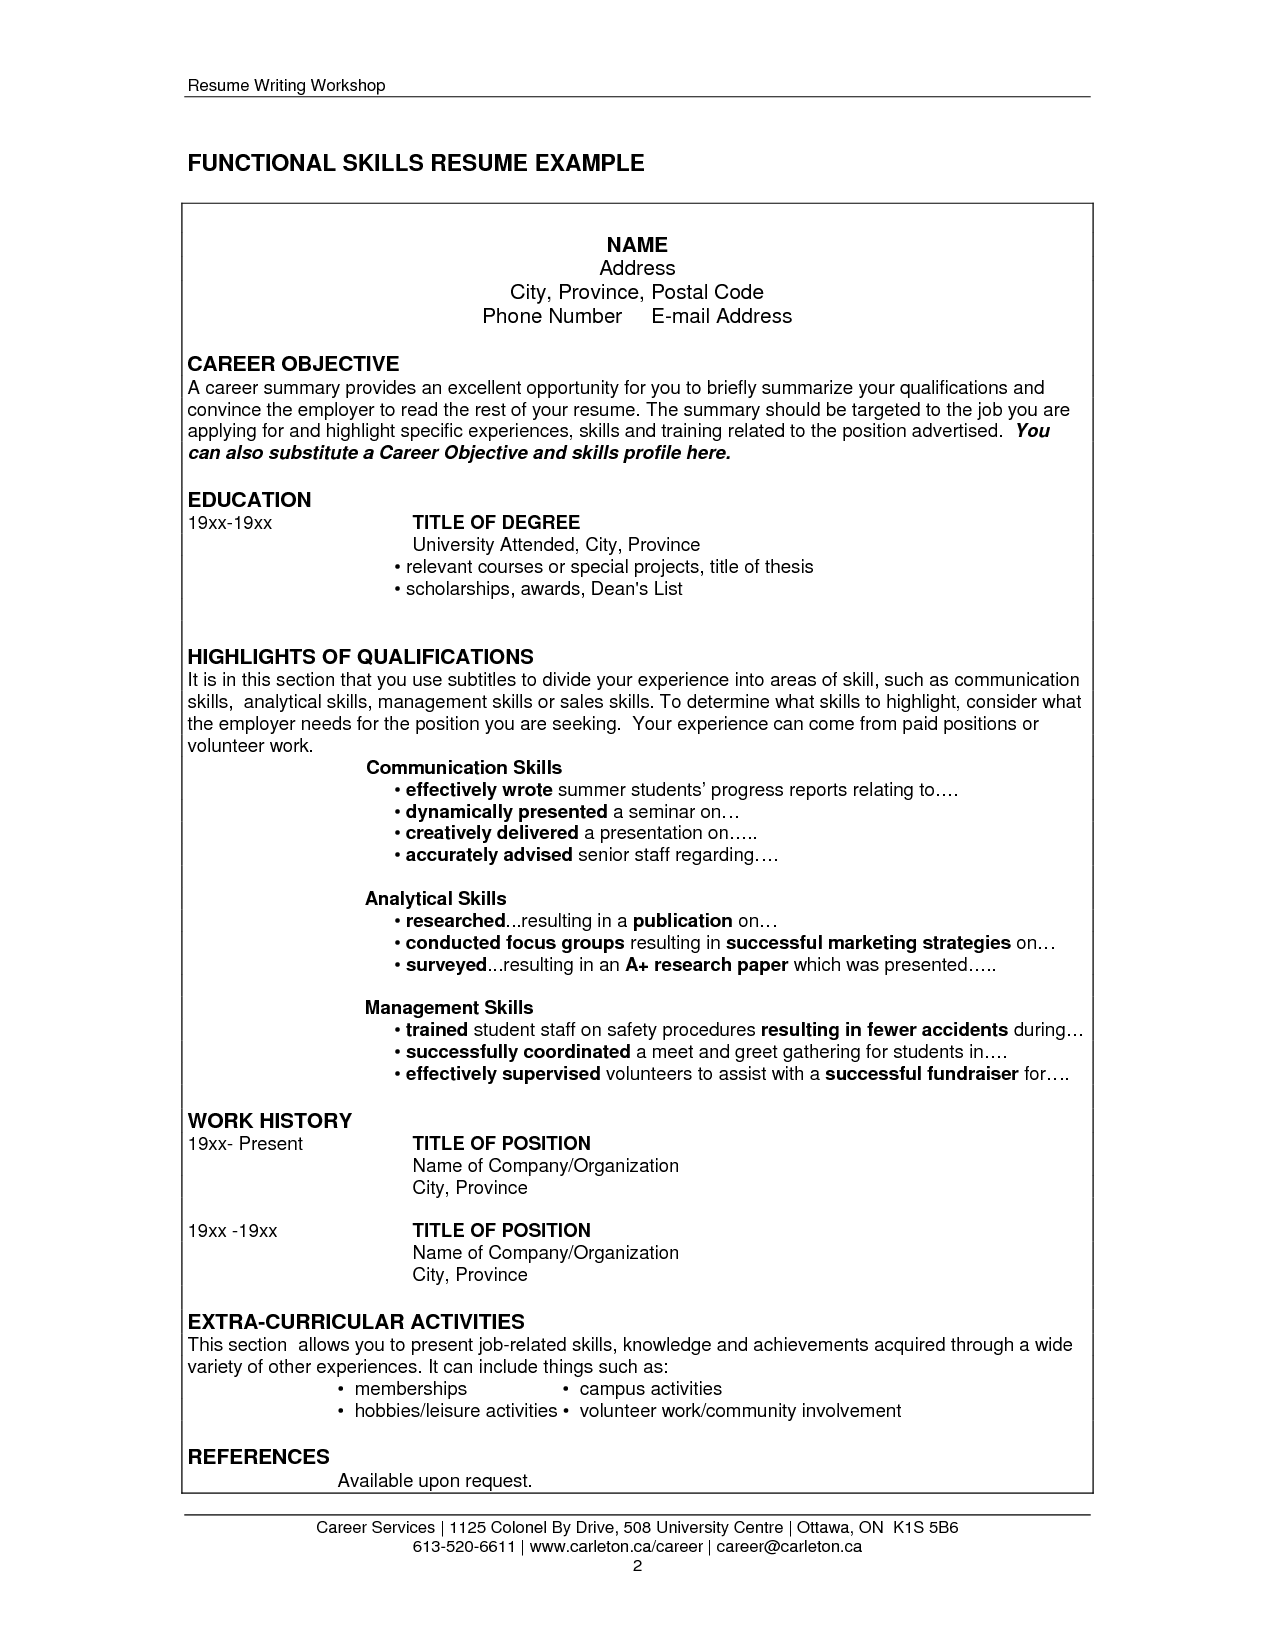 Image Result For Skills Resume Format  What To Put On A Resume For Skills